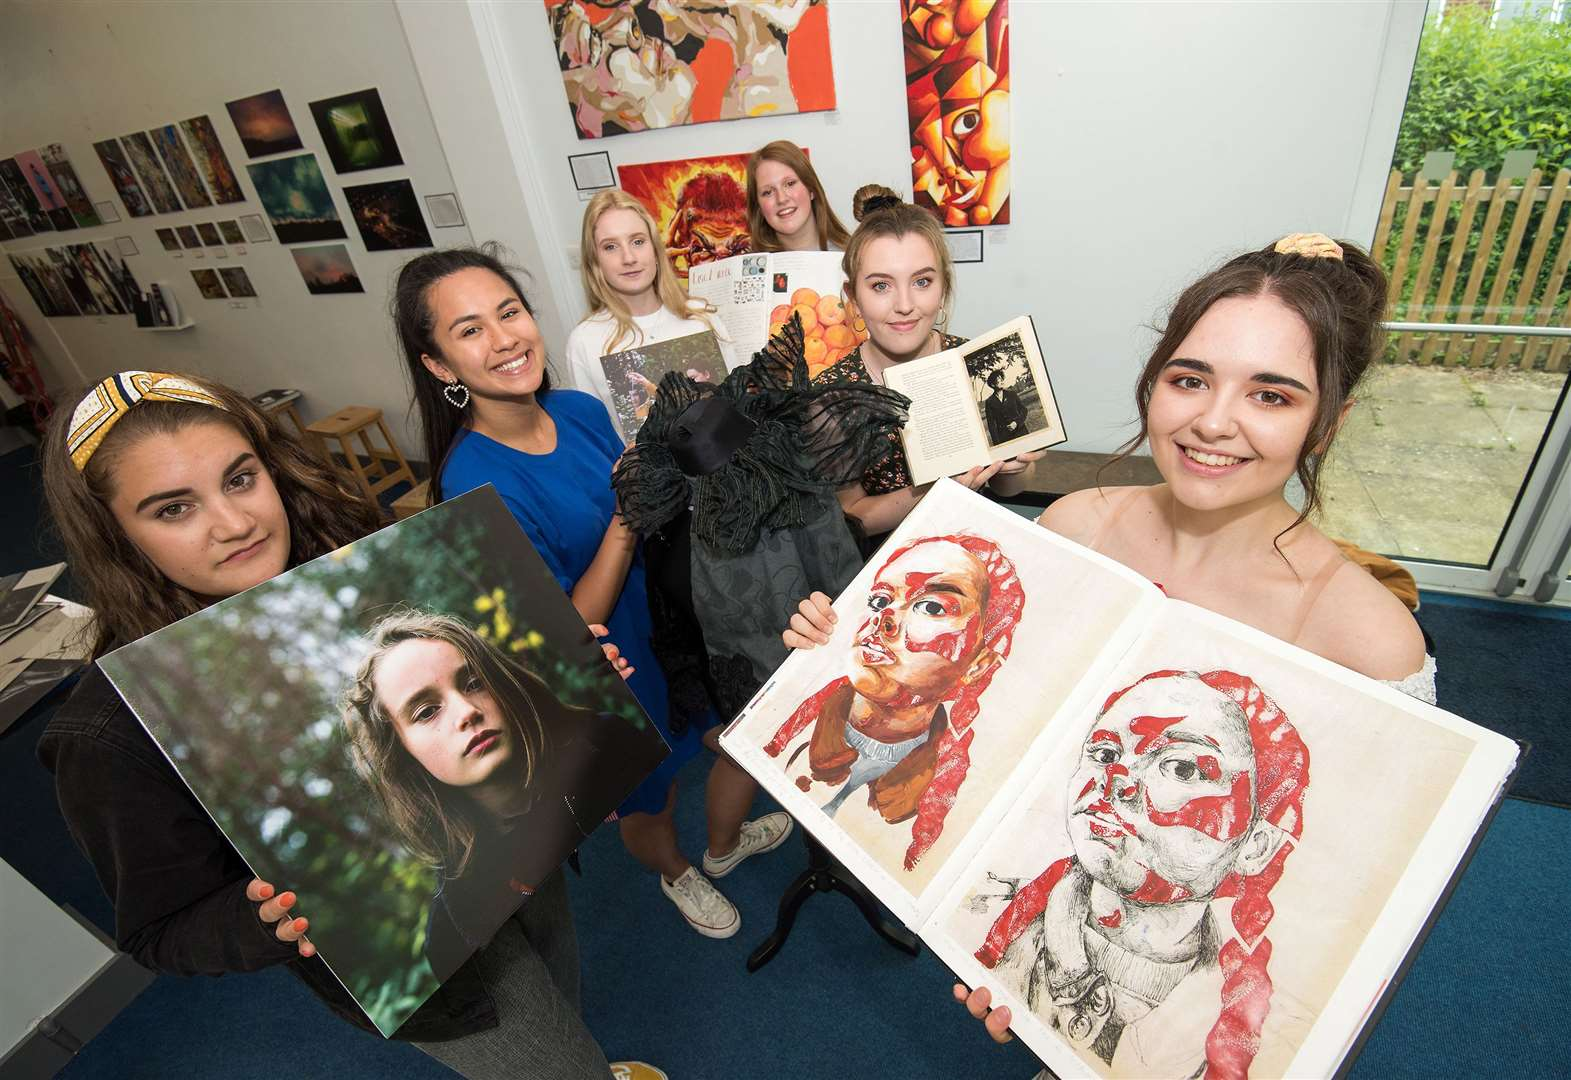 Students from Thurston Community College showcase artwork